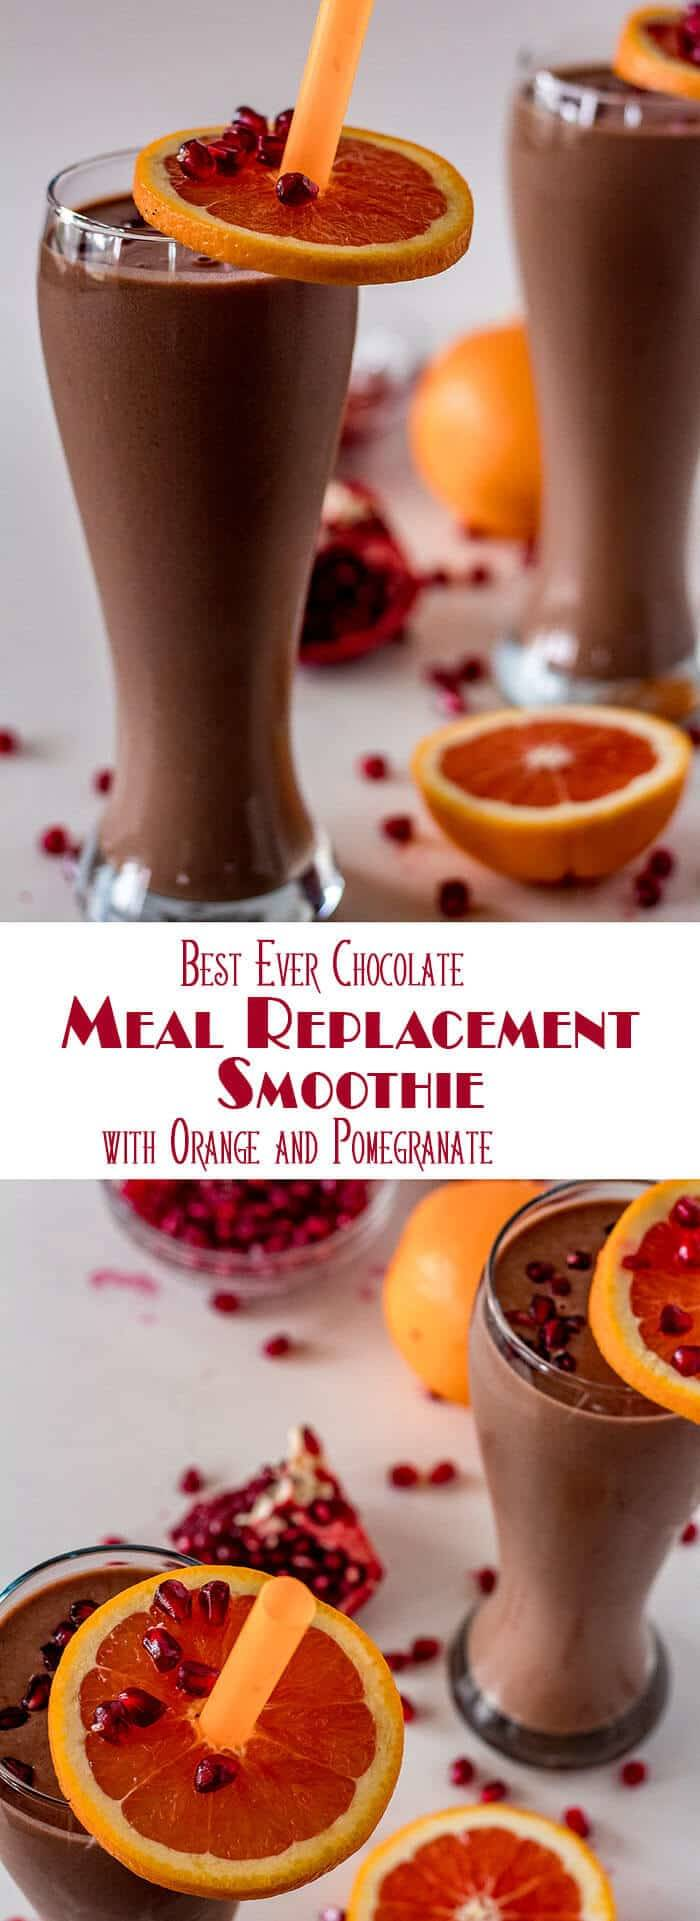 A chocolate, orange, and pomegranate smoothie that tastes more like a milk shake than a workout recovery drink? Yes! ThisBest Ever Chocolate Meal Replacement Smoothie comes in at 33 grams of protein per serving, and 443 calories with the help of Bob's Red Mill Protein and Fiber Nutritional Booster... A tasty (and healthy) start to the New Year! #BobsRedMill #mealreplacementsmoothie #chocolatesmoothie #chocolateproteinshake